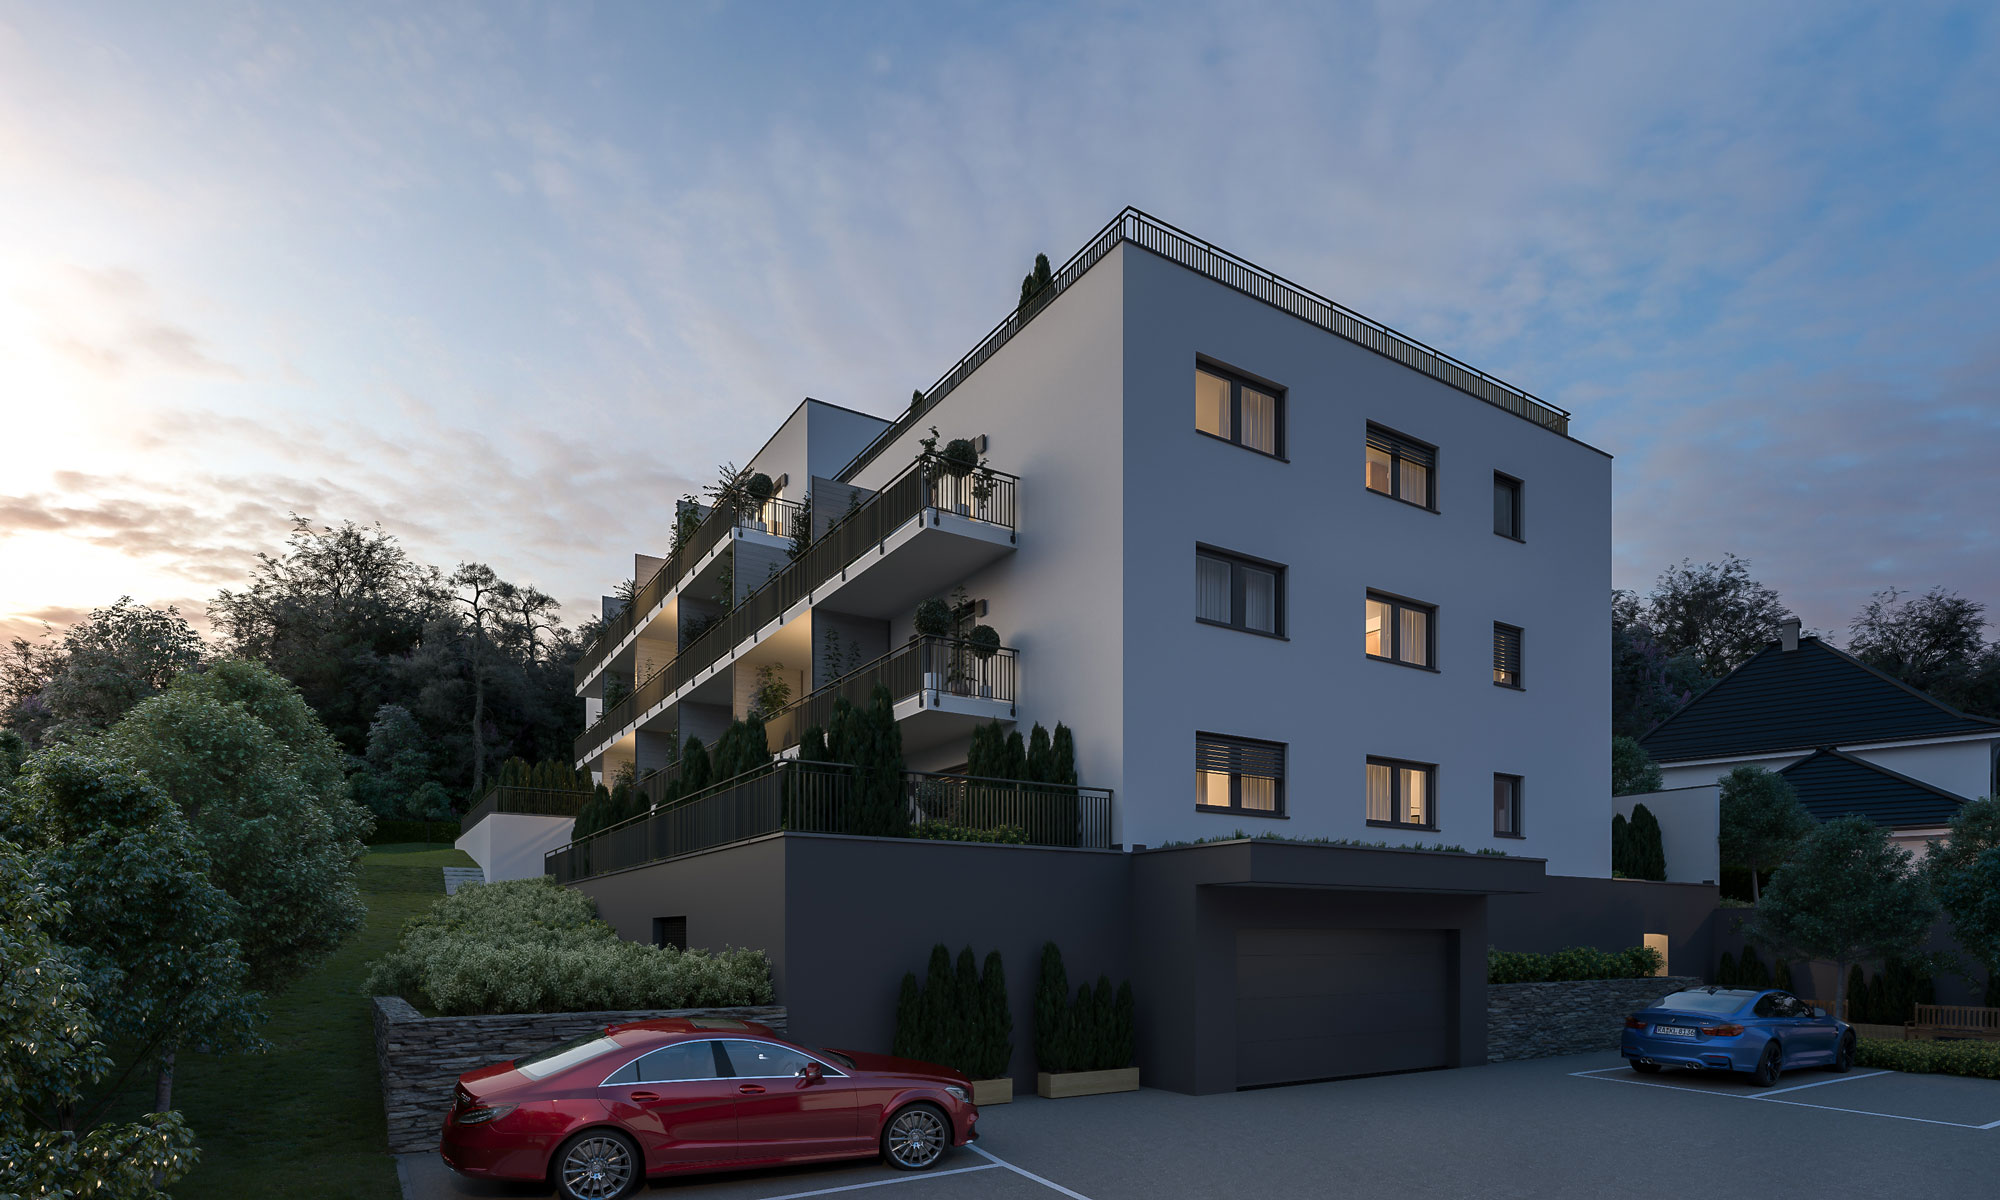 Exterior Architectural Rendering - Mallersdorf - Residential